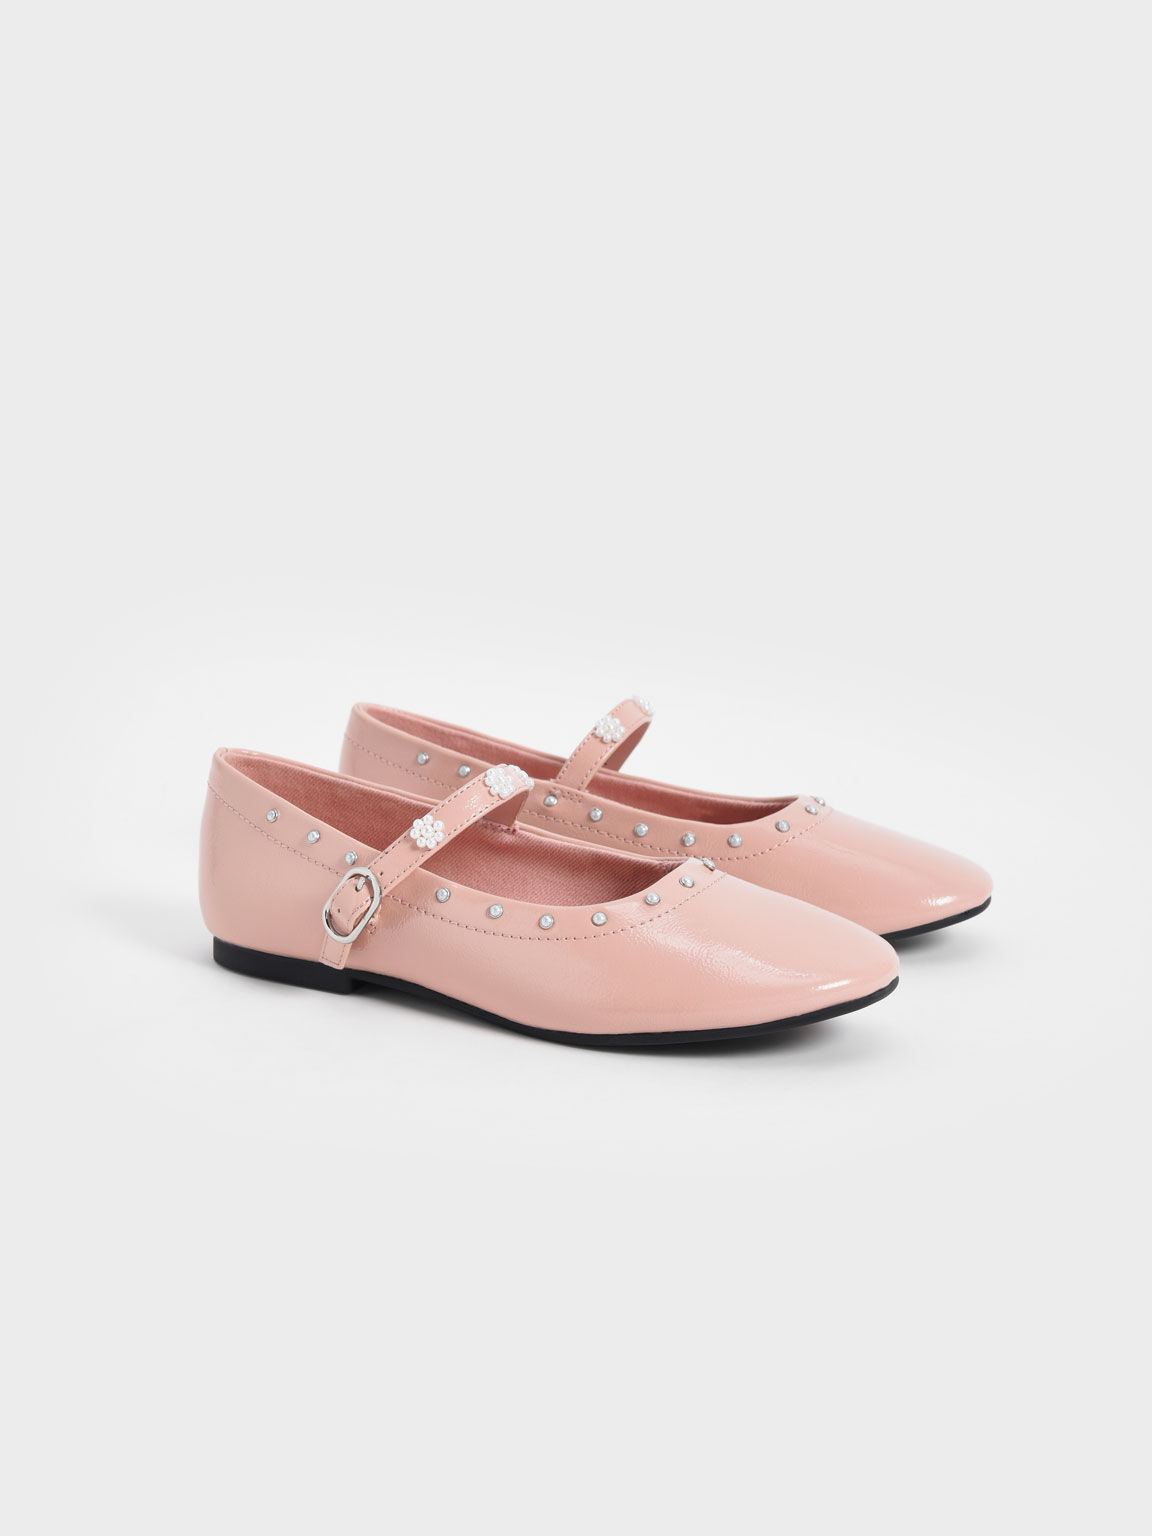 Girls' Patent Beaded Mary Janes, Pink, hi-res